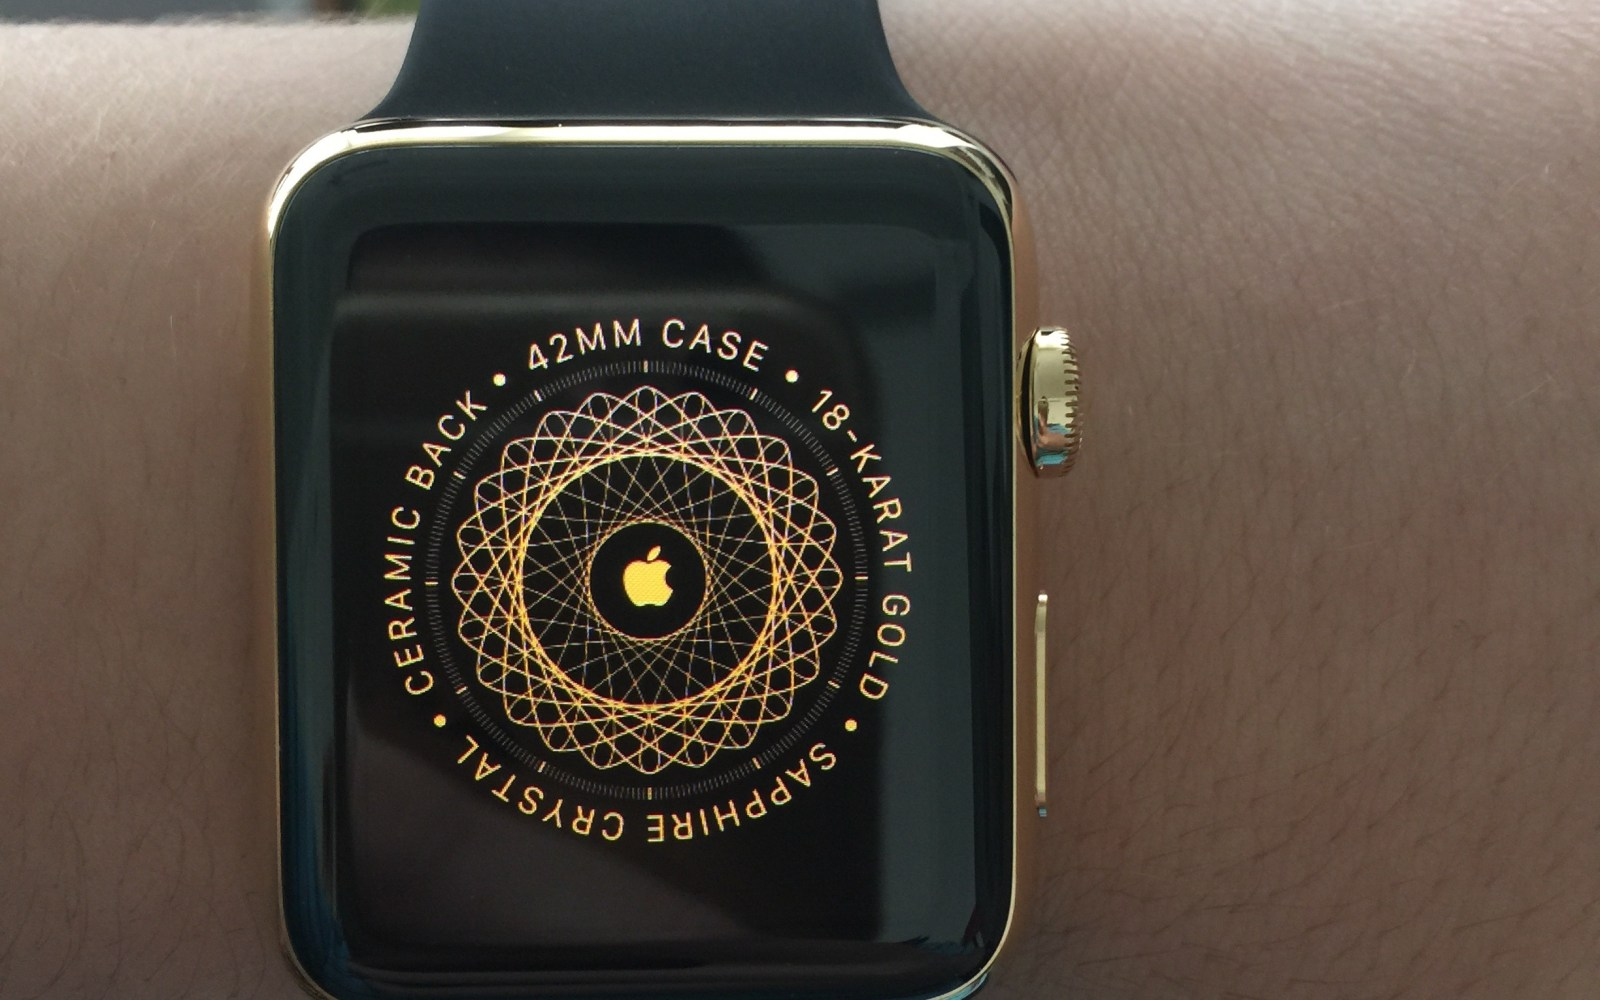 Gold Apple Watch Editions arrive for regular customers with new box, booklet, gold pairing screen [Gallery, Video]